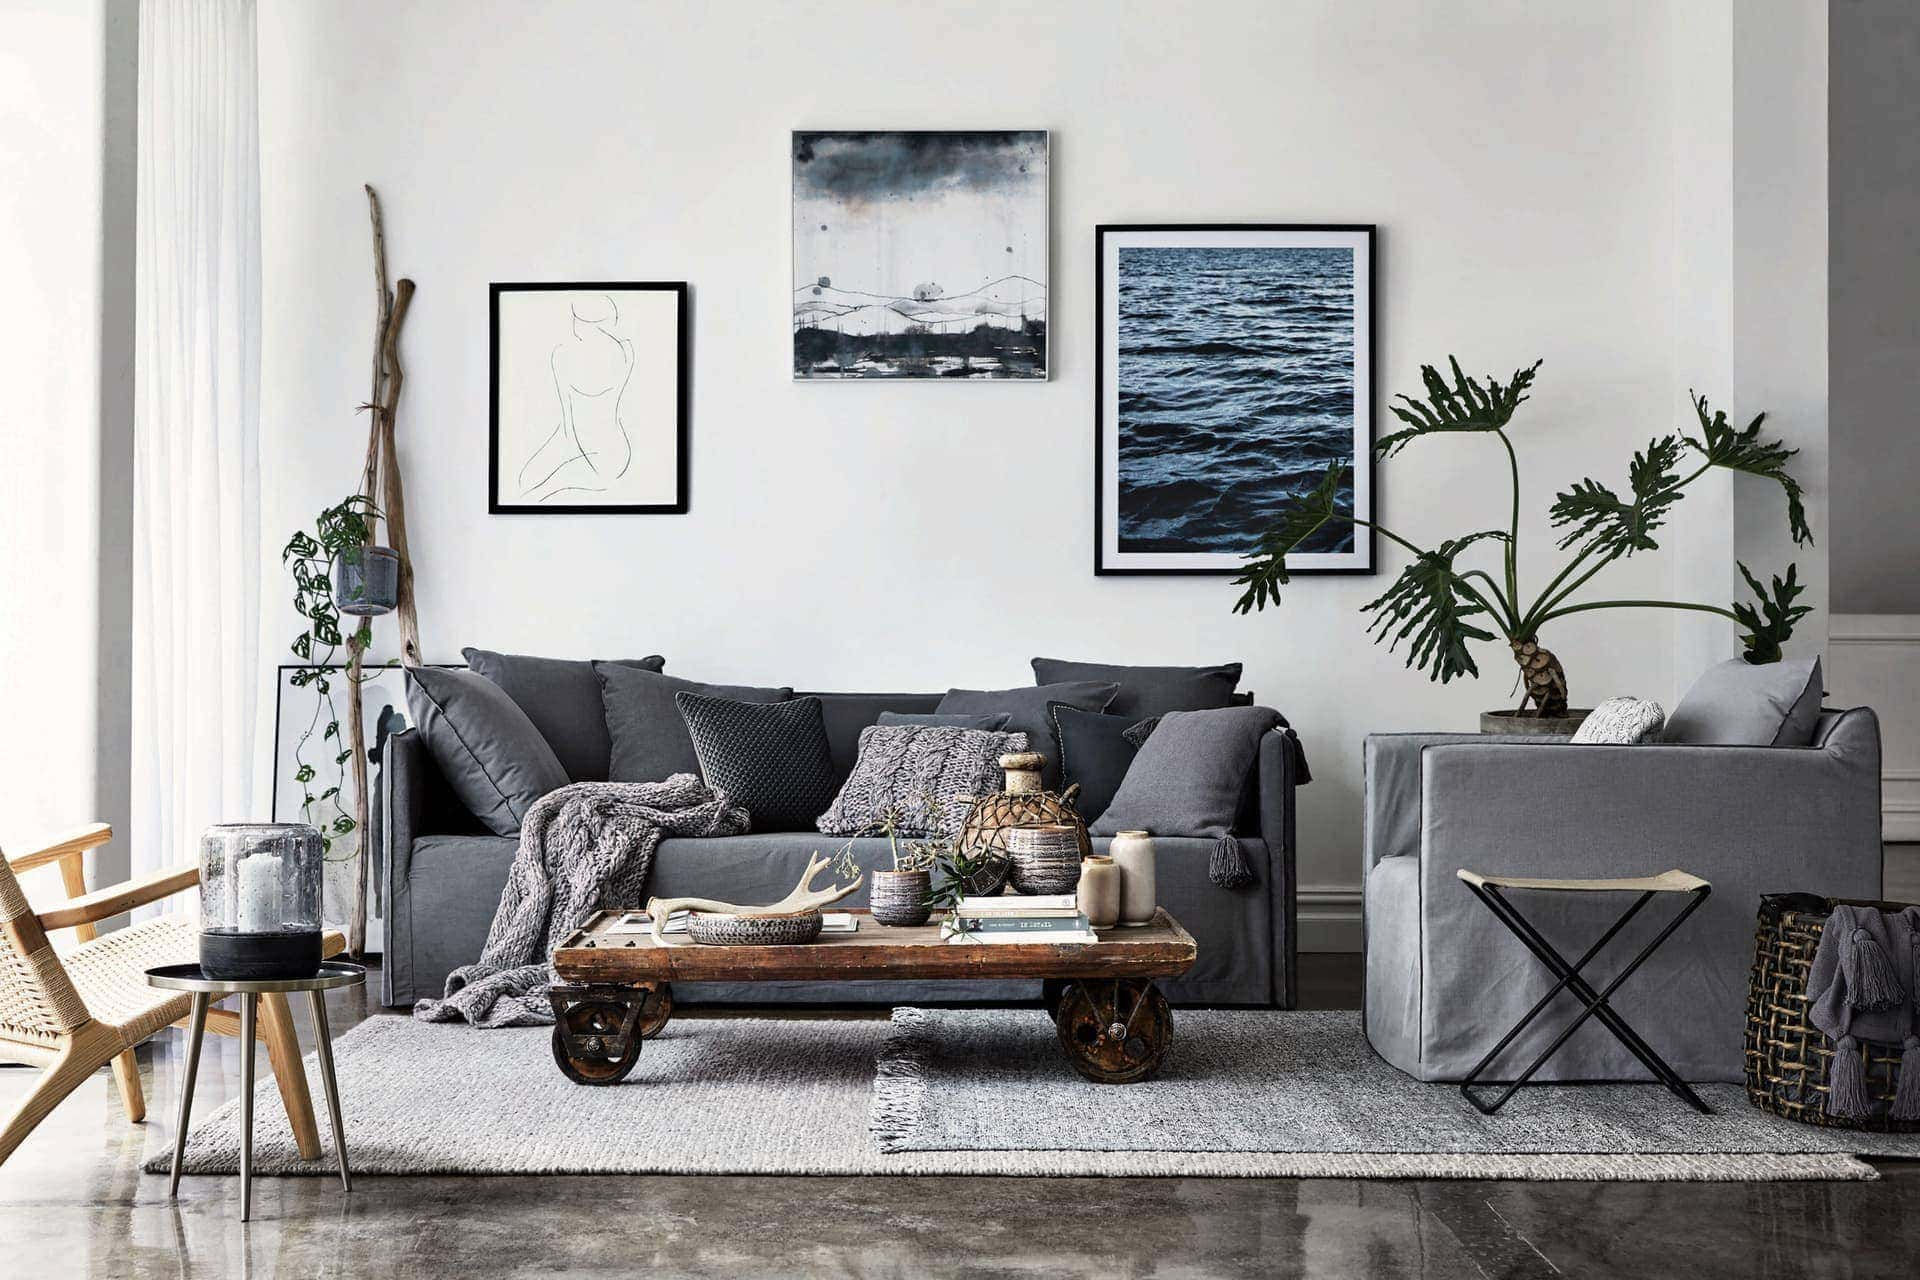 industrial coastal living room with grey slipcover sofa and industrial coffee table with wheels